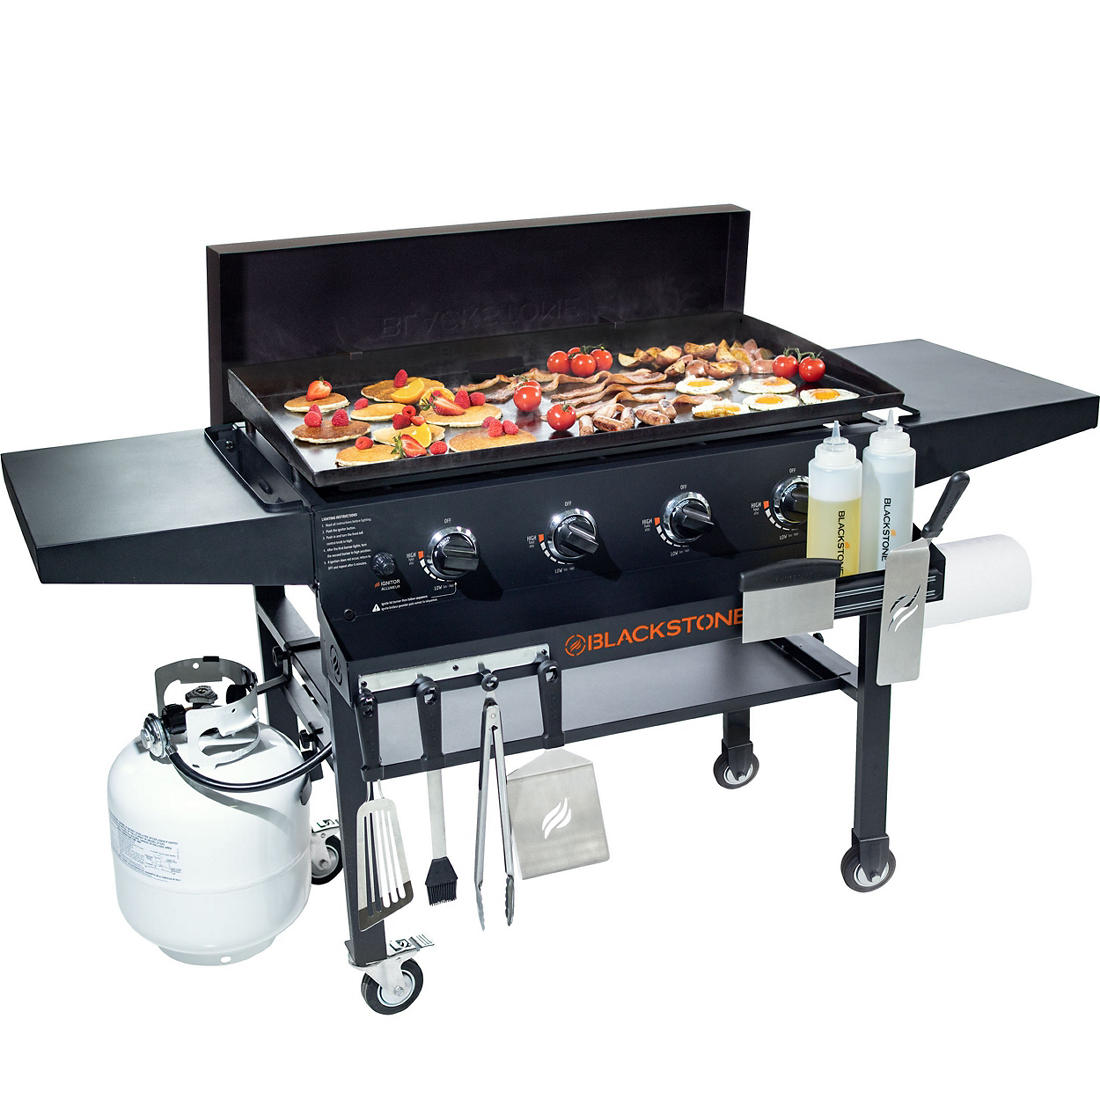 Blackstone 36 Gas Griddle With Hard Cover And Front Shelf Bjs Wholesale Club